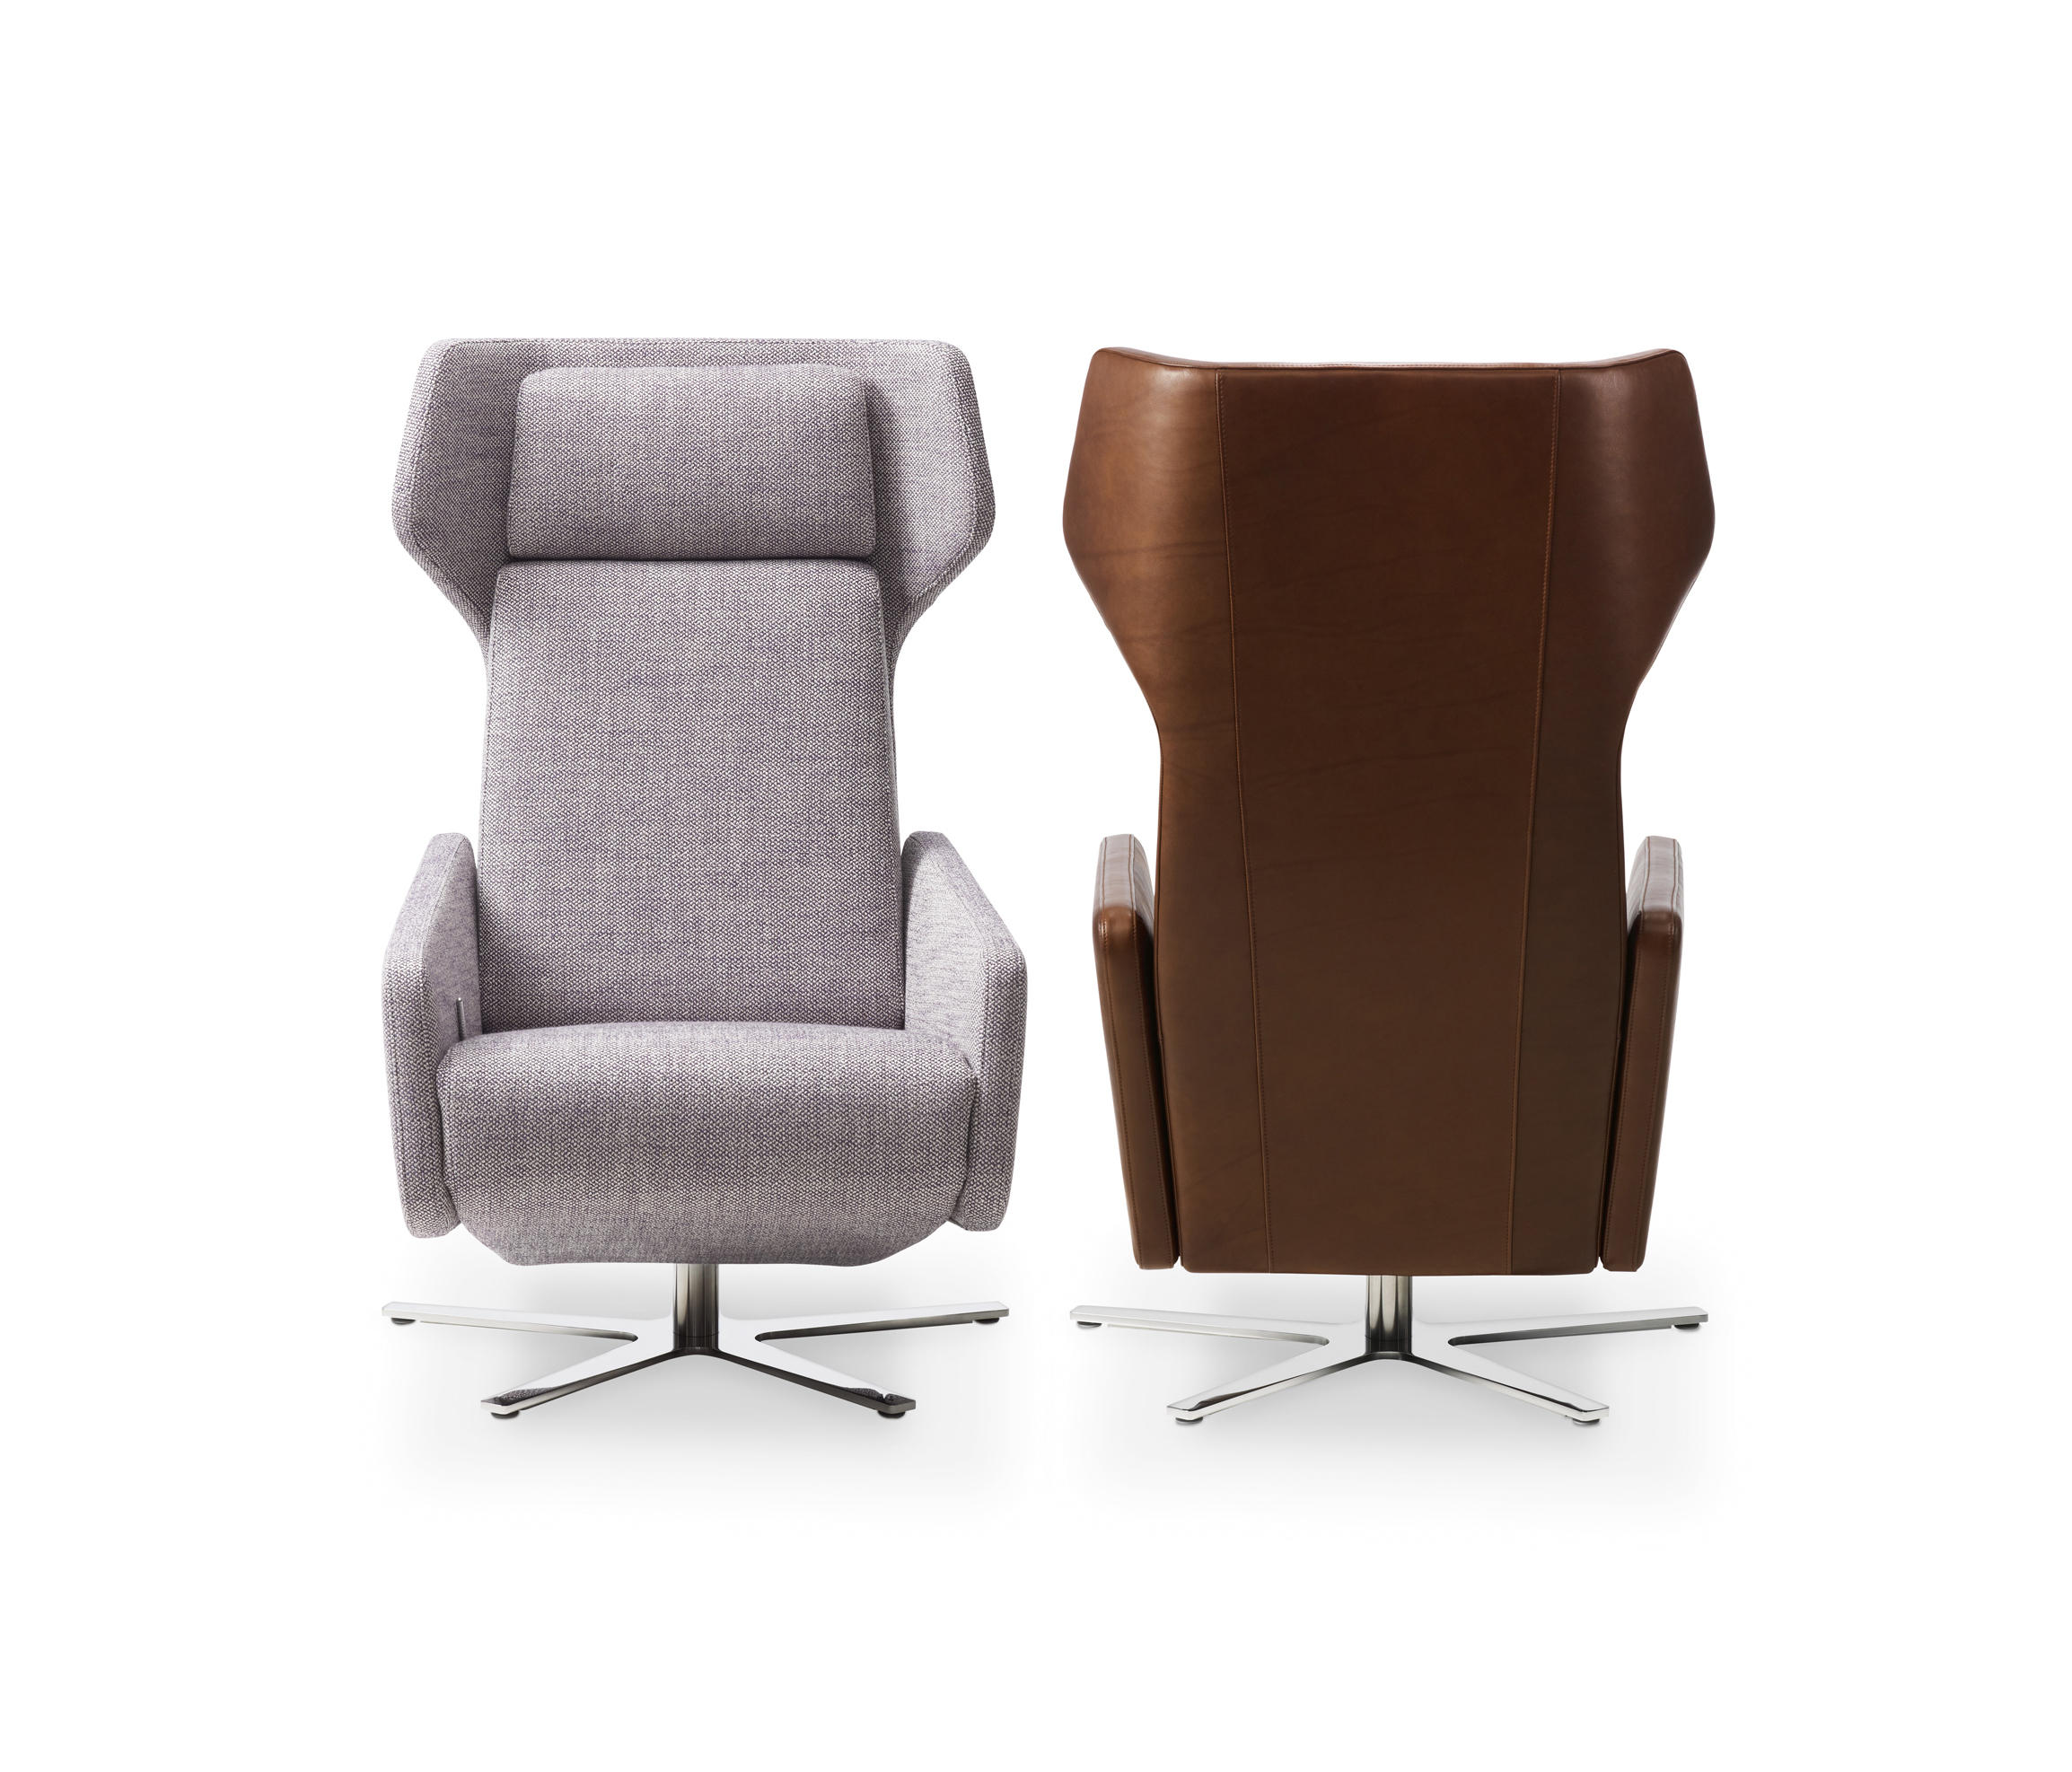 Model 1303 nano recliners by intertime architonic for Ohrensessel couch